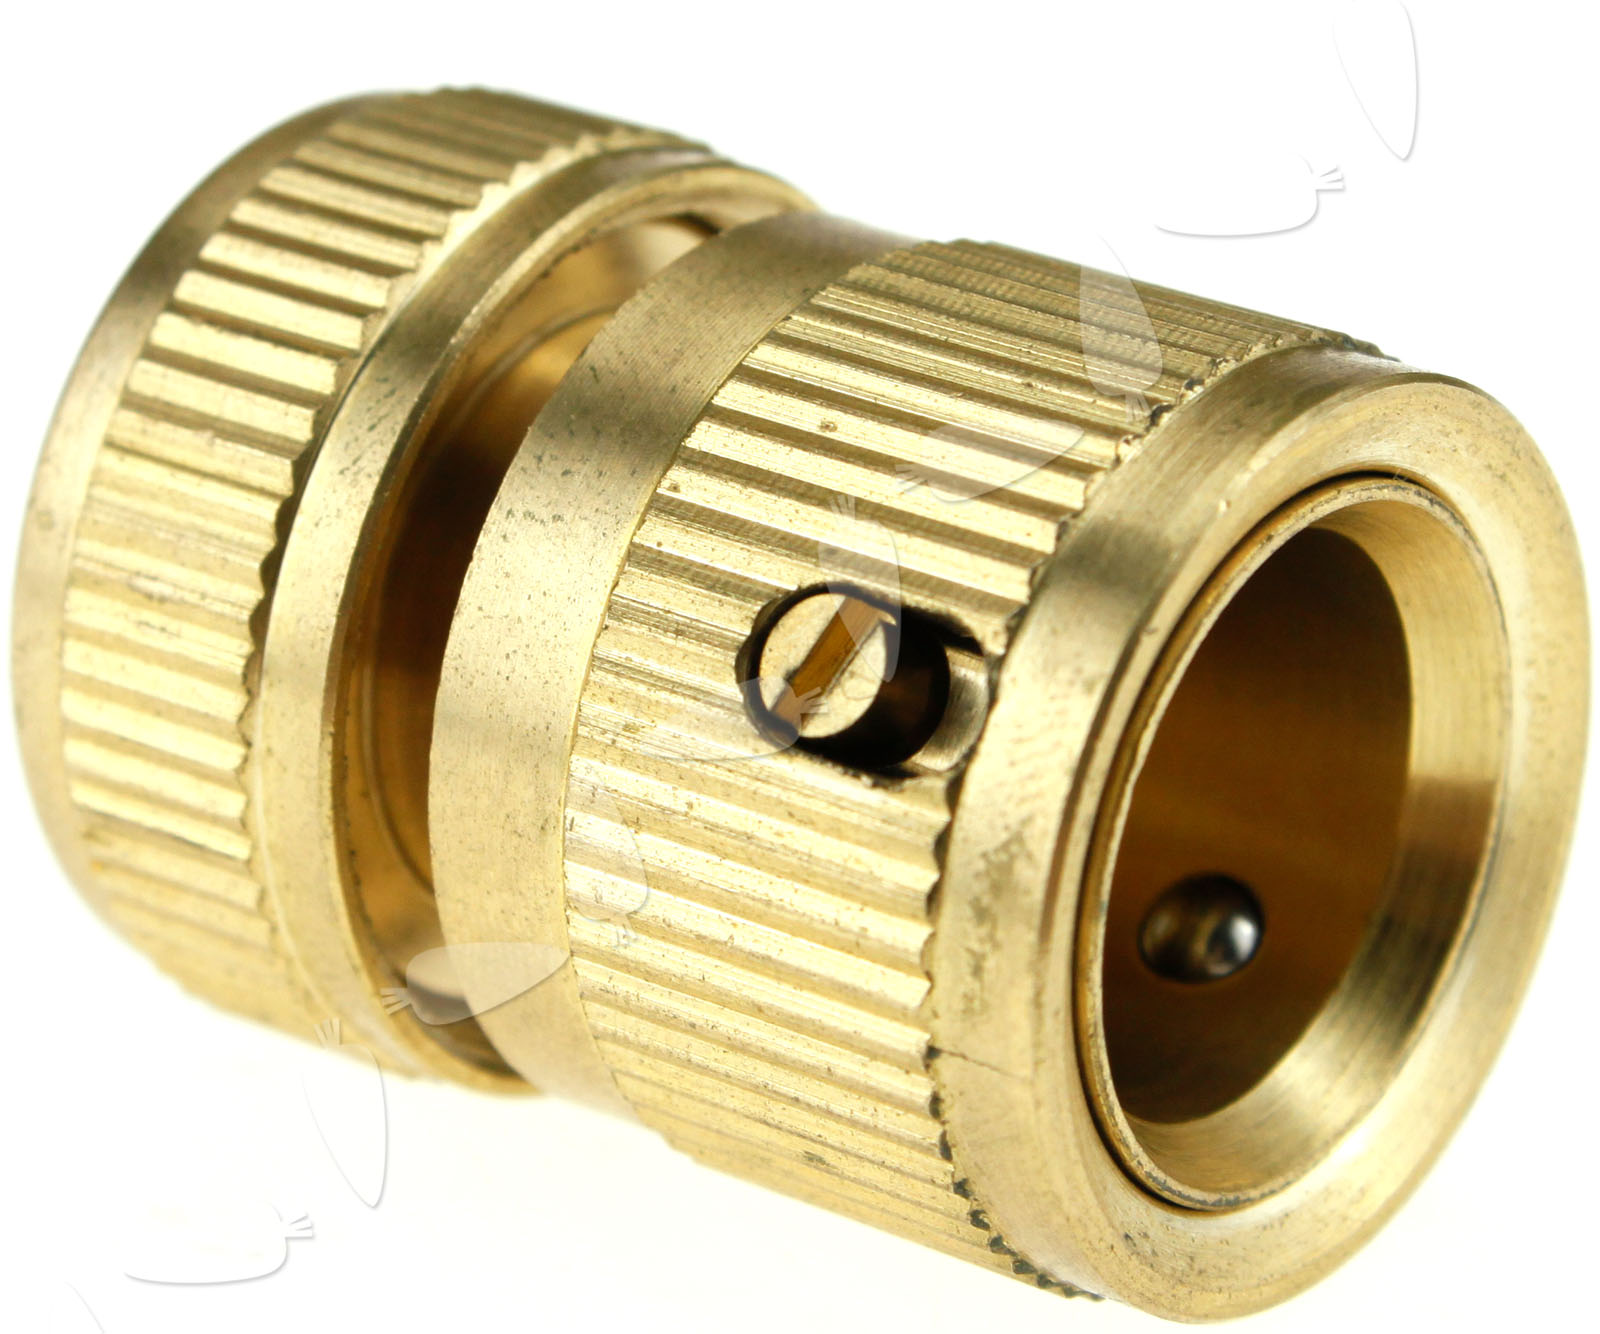 New Quick Connect 1 2 Female Hose Connector Garden Outdoor Brass Ebay